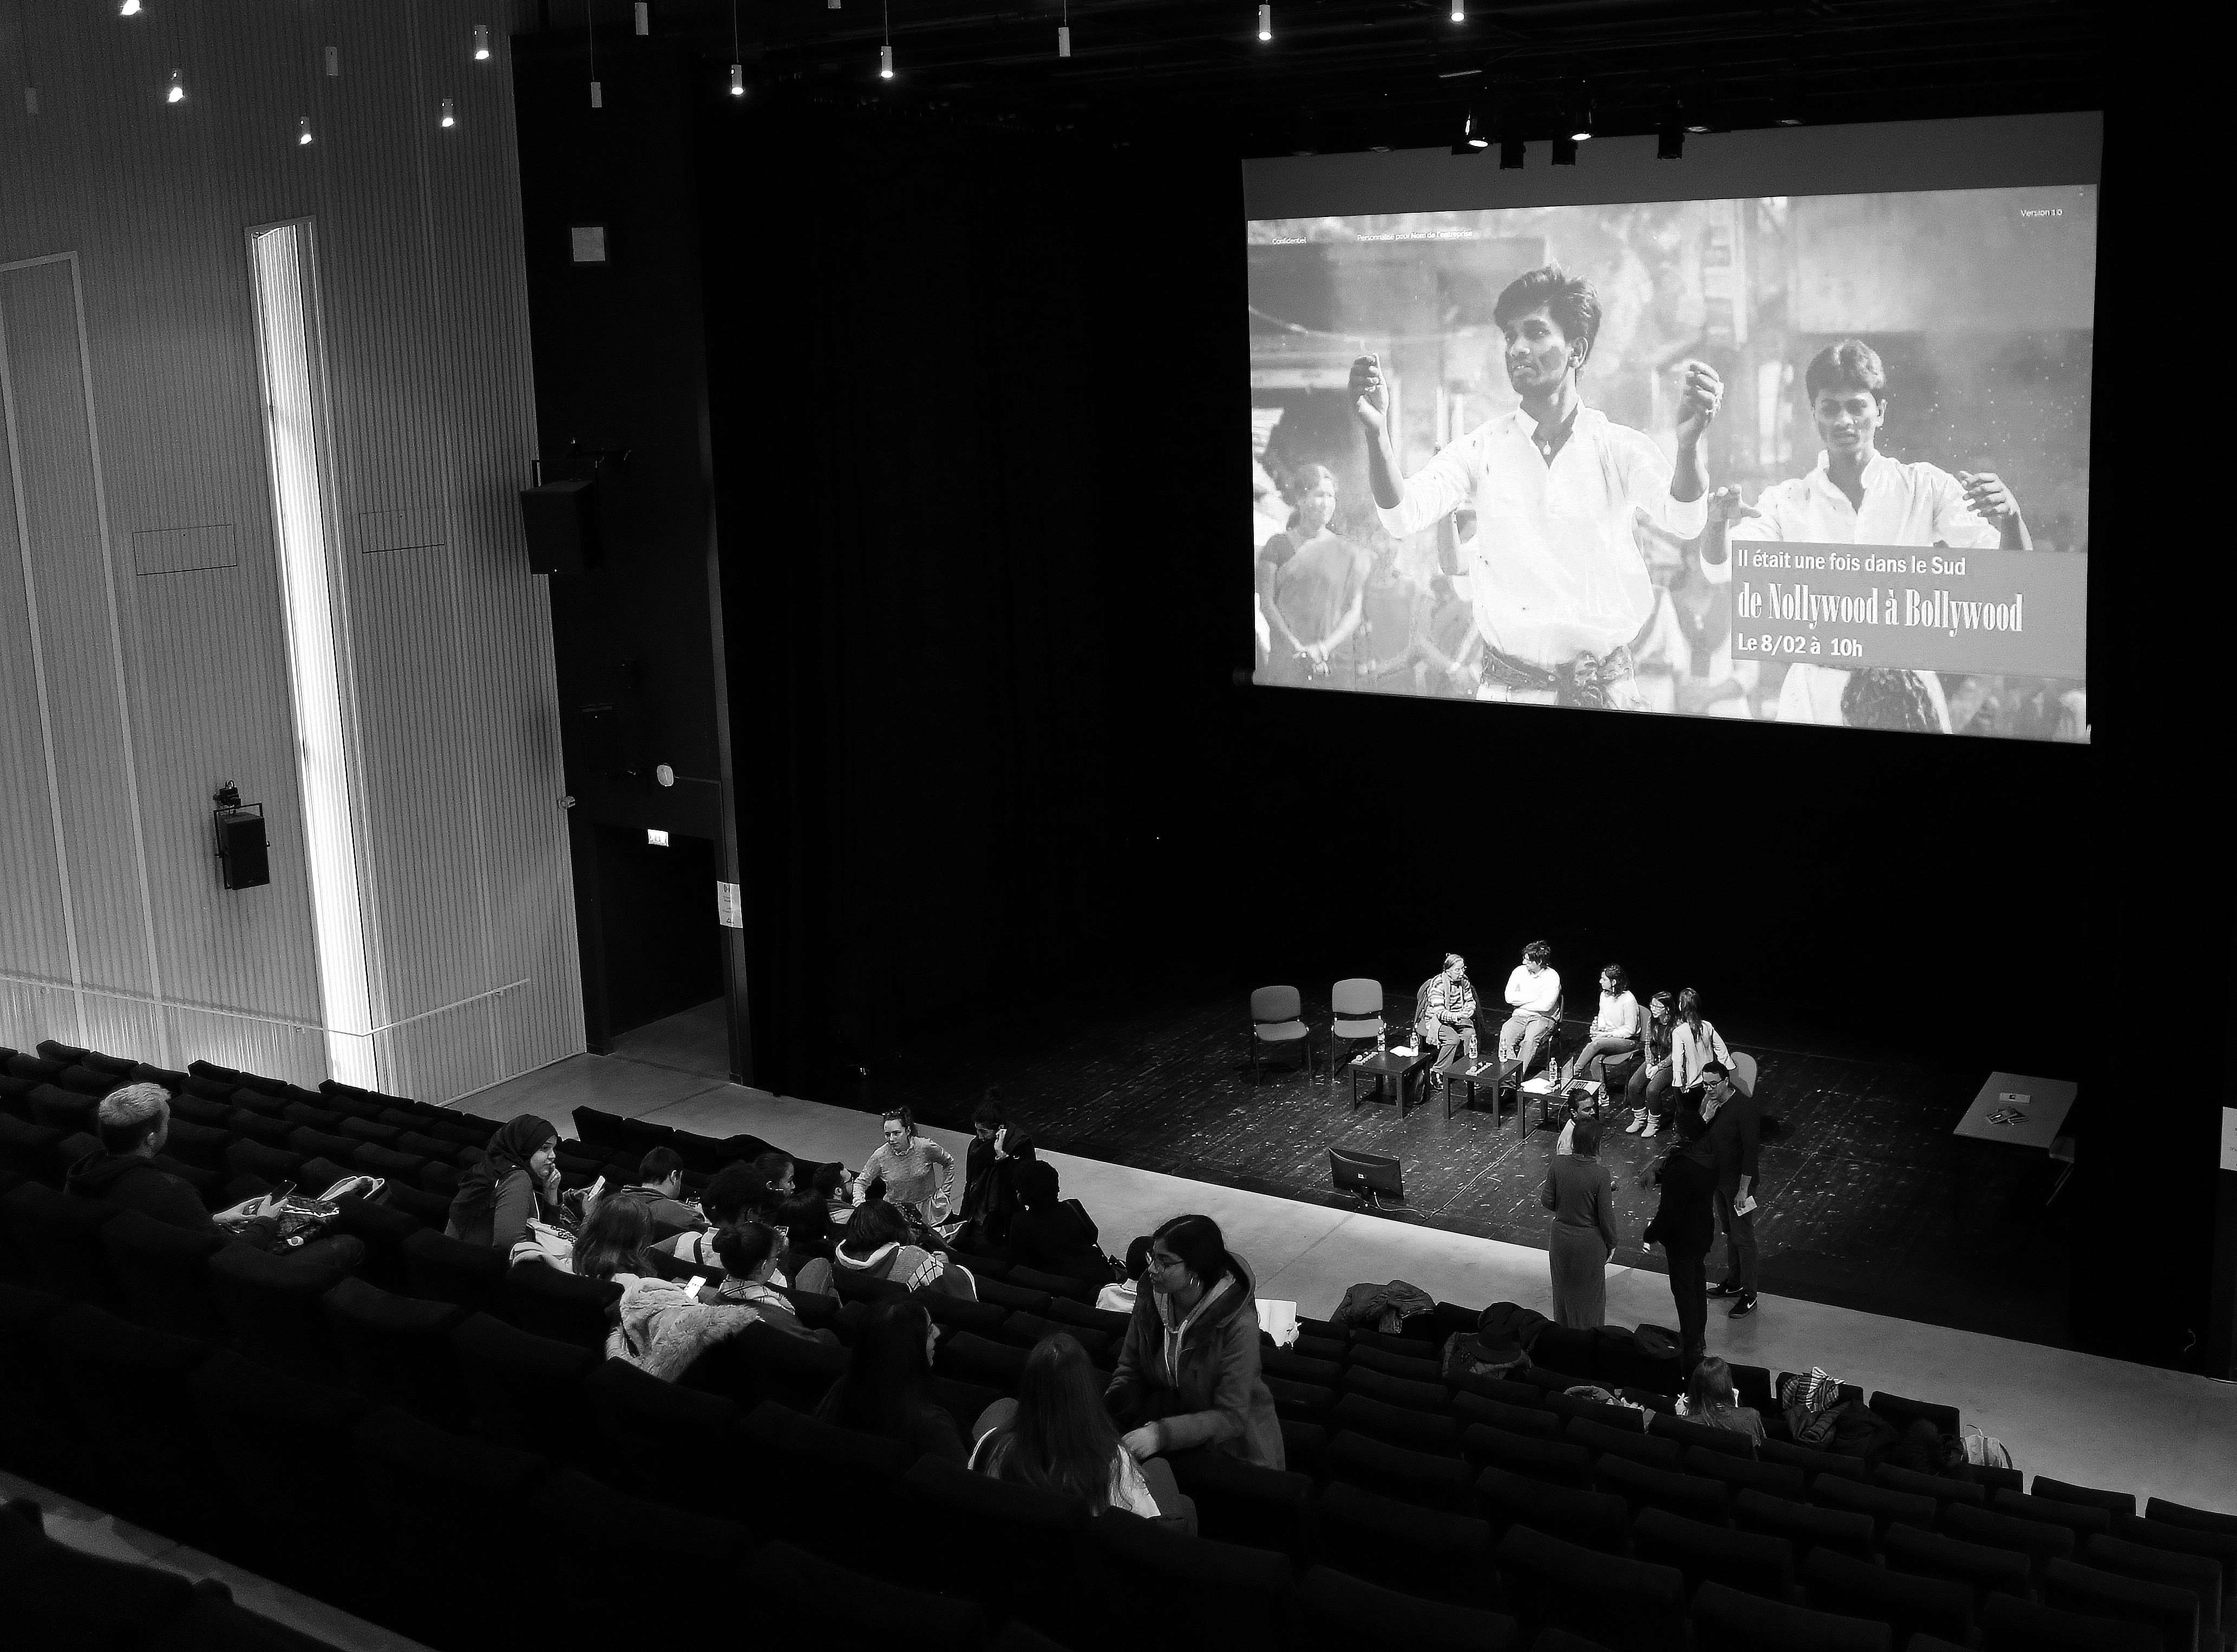 Studios VOA conférence Nollywood Bollywood Doublage Sous-titrage